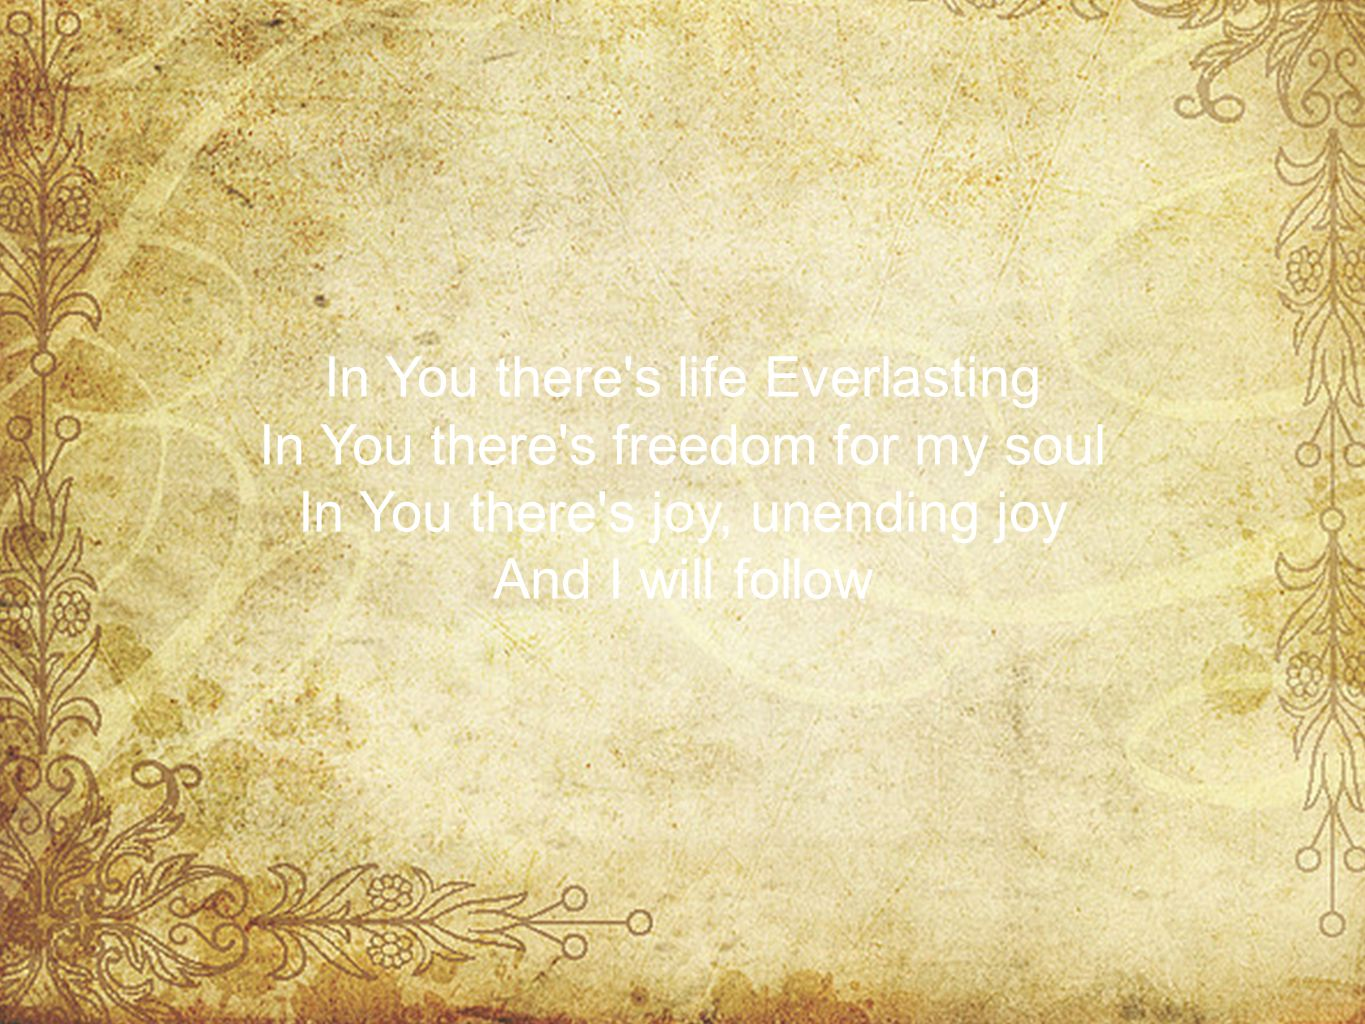 In You there s life Everlasting In You there s freedom for my soul In You there s joy, unending joy And I will follow